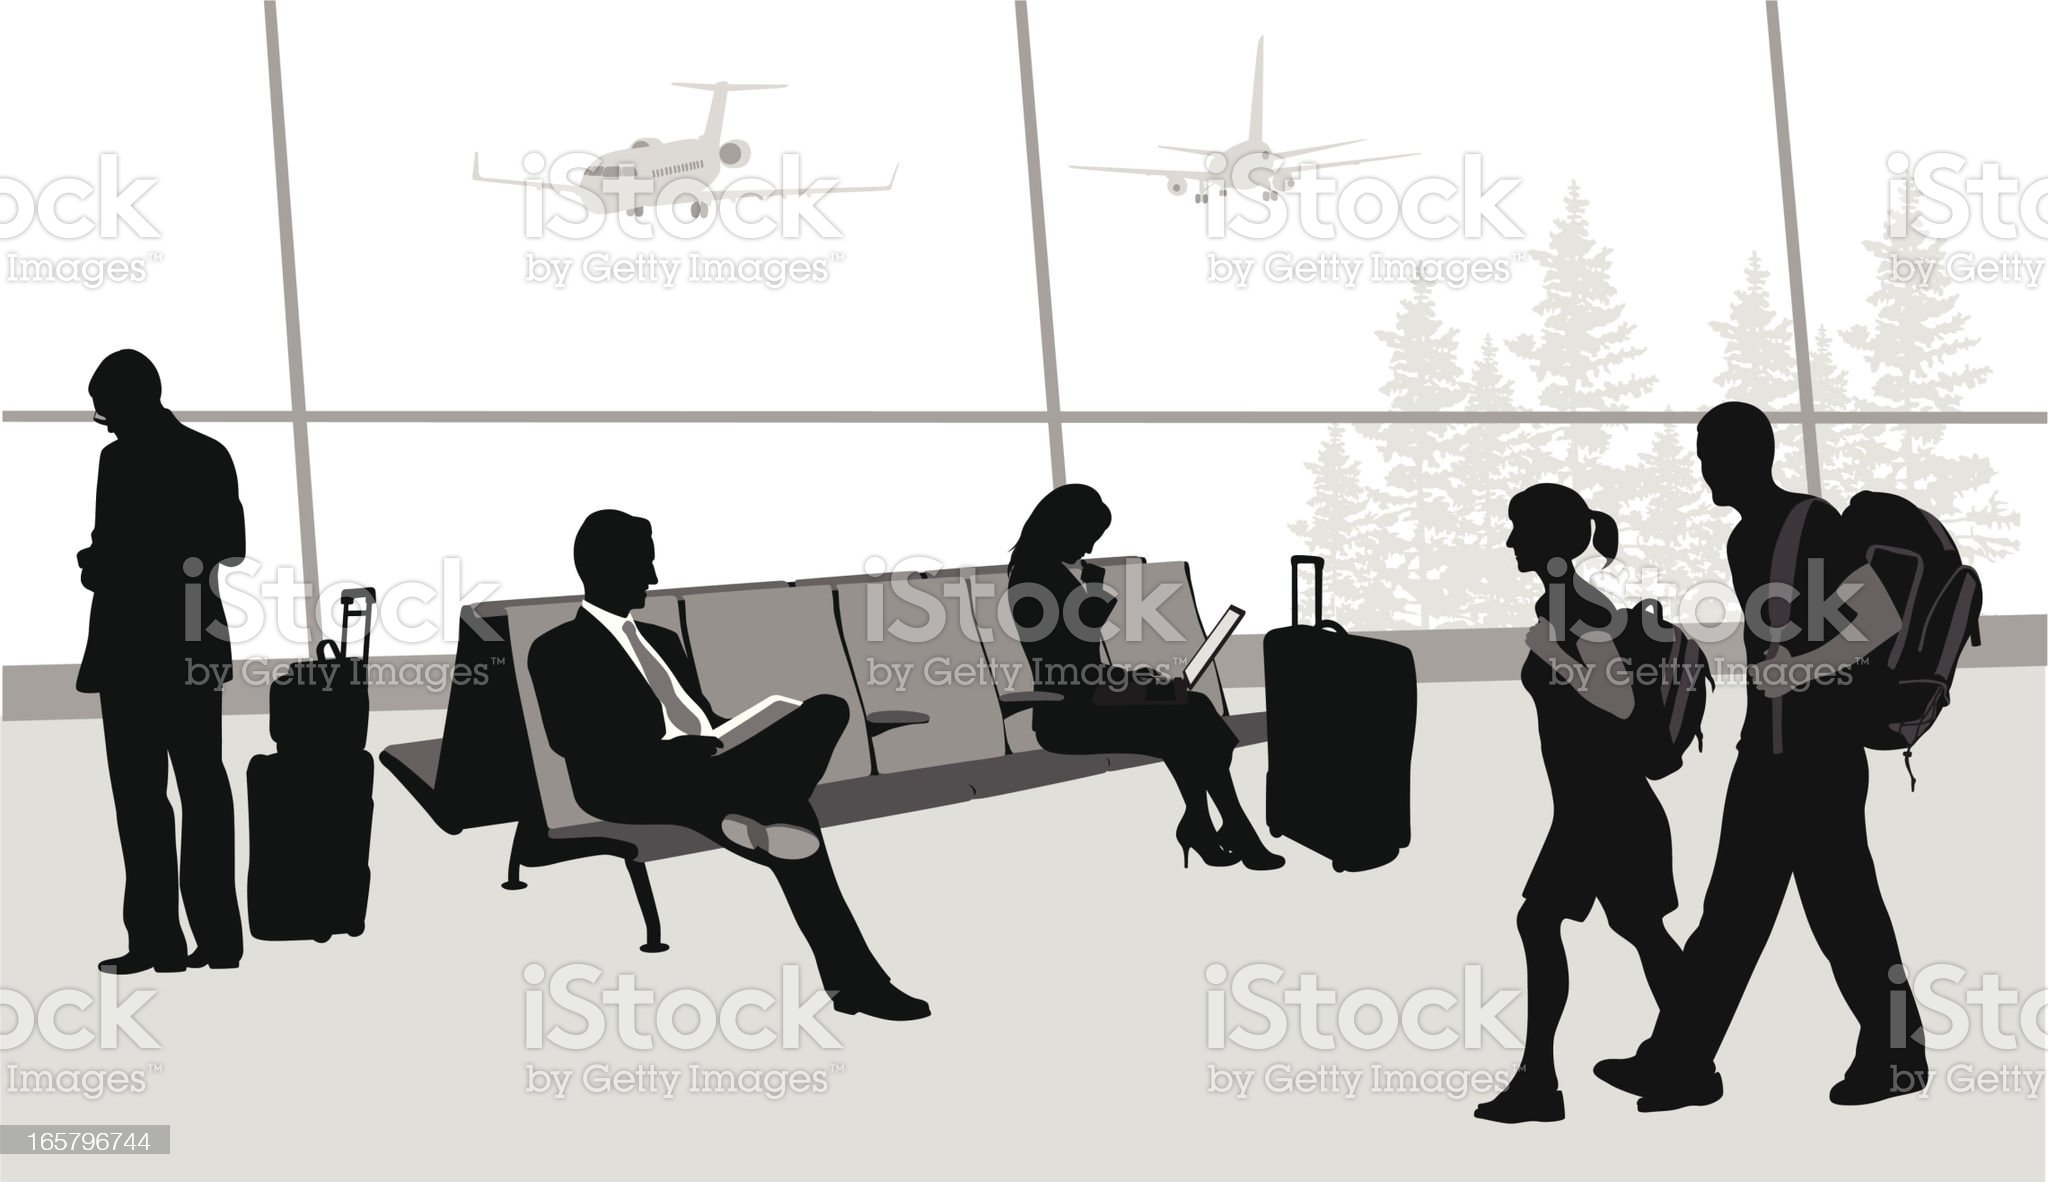 Airport Travellers Vector Silhouette royalty-free stock vector art